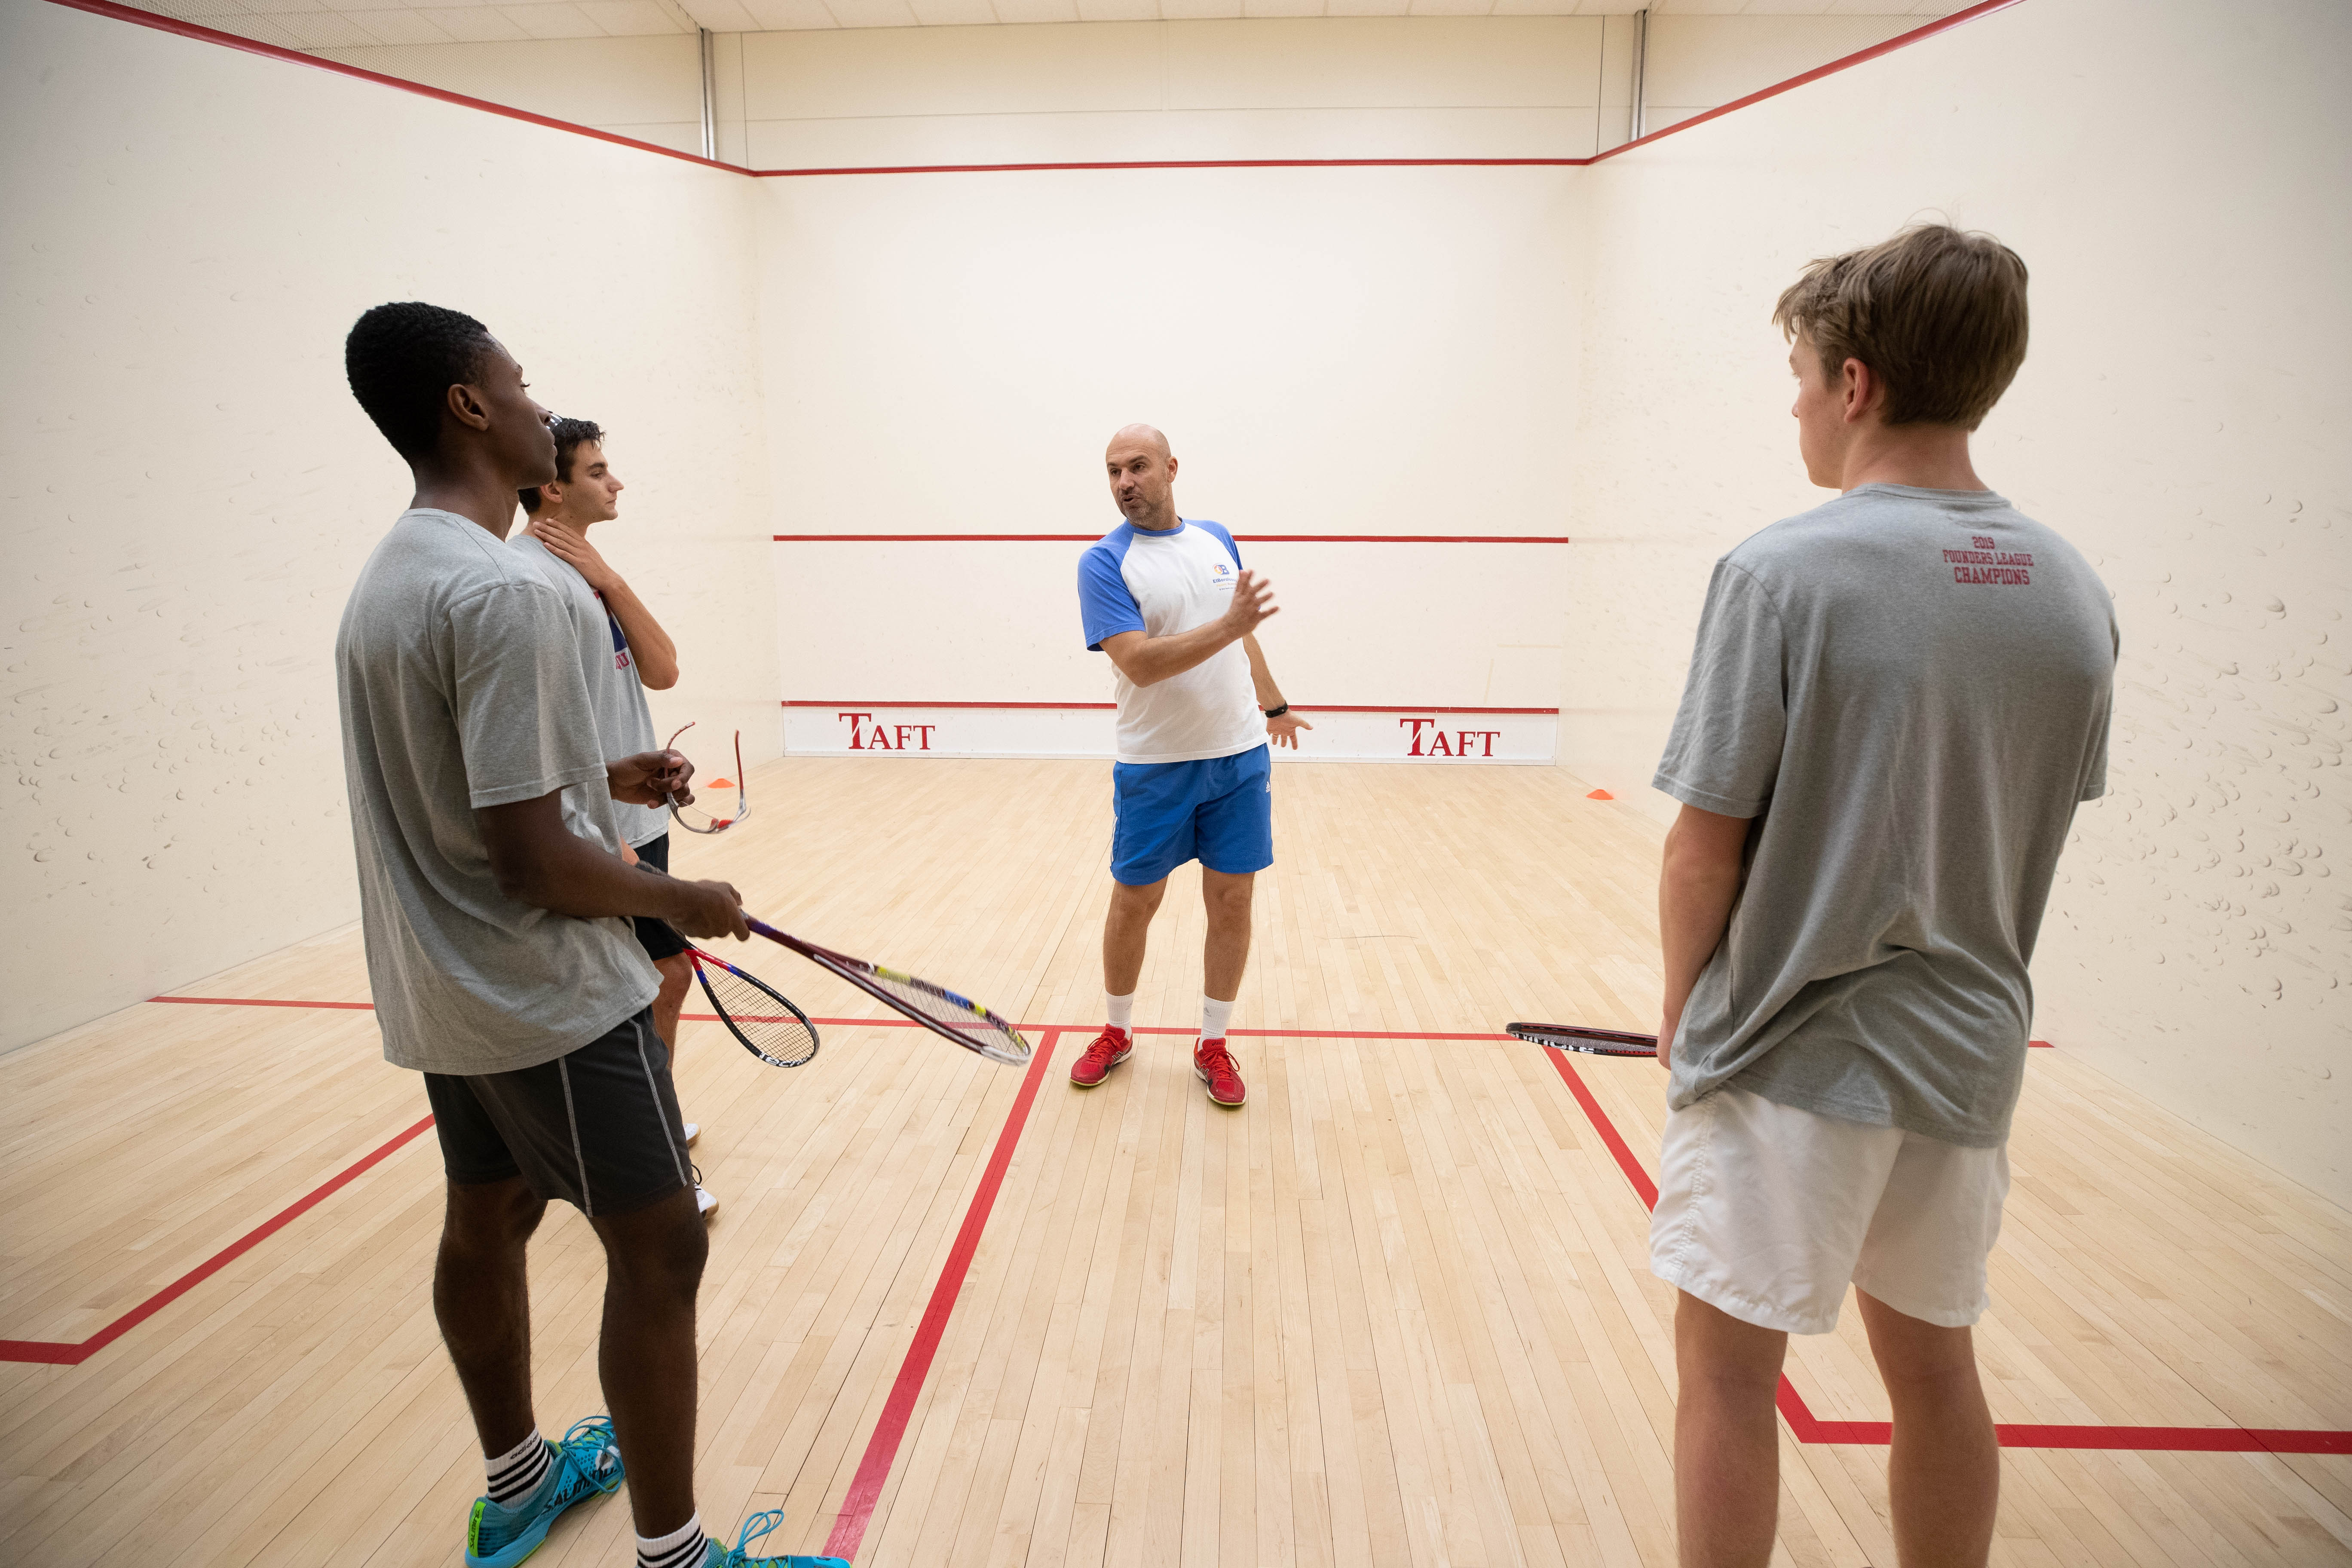 Coach ElBorolossy works with squash players on Taft's court.